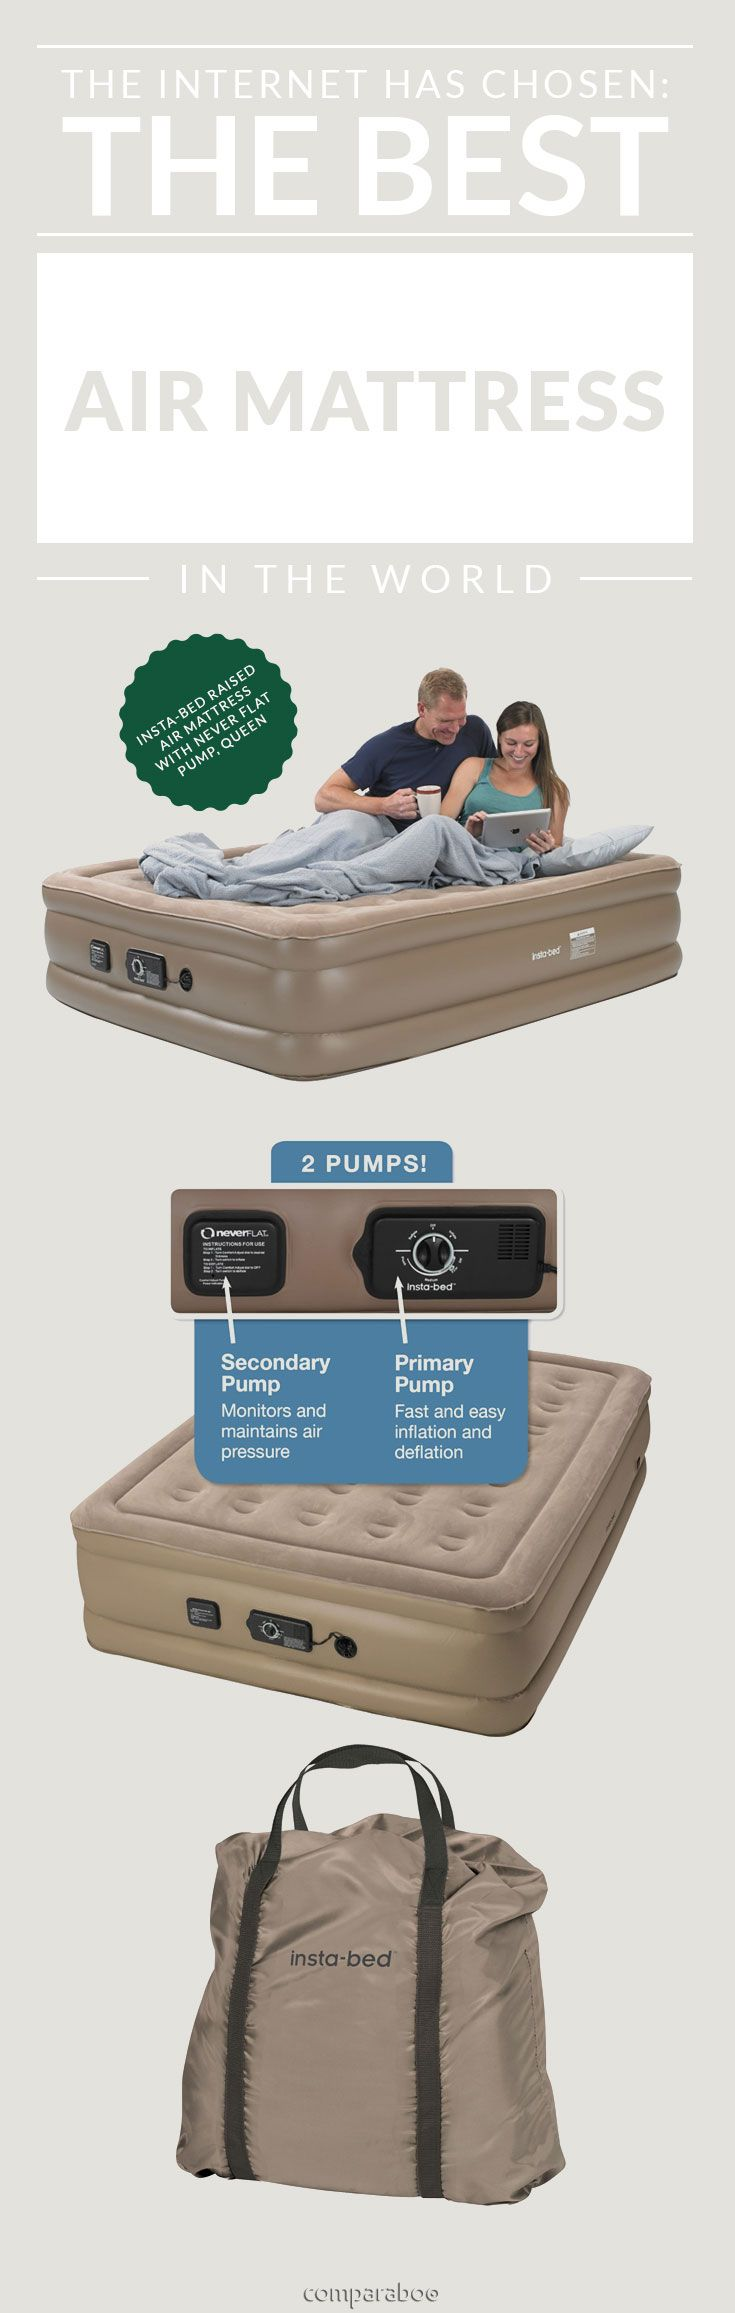 Sleep sound and portable. The highest rated air mattress that stays inflated all night goes to InstaBed AirBeds www.comparaboo.com | @Comparaboo